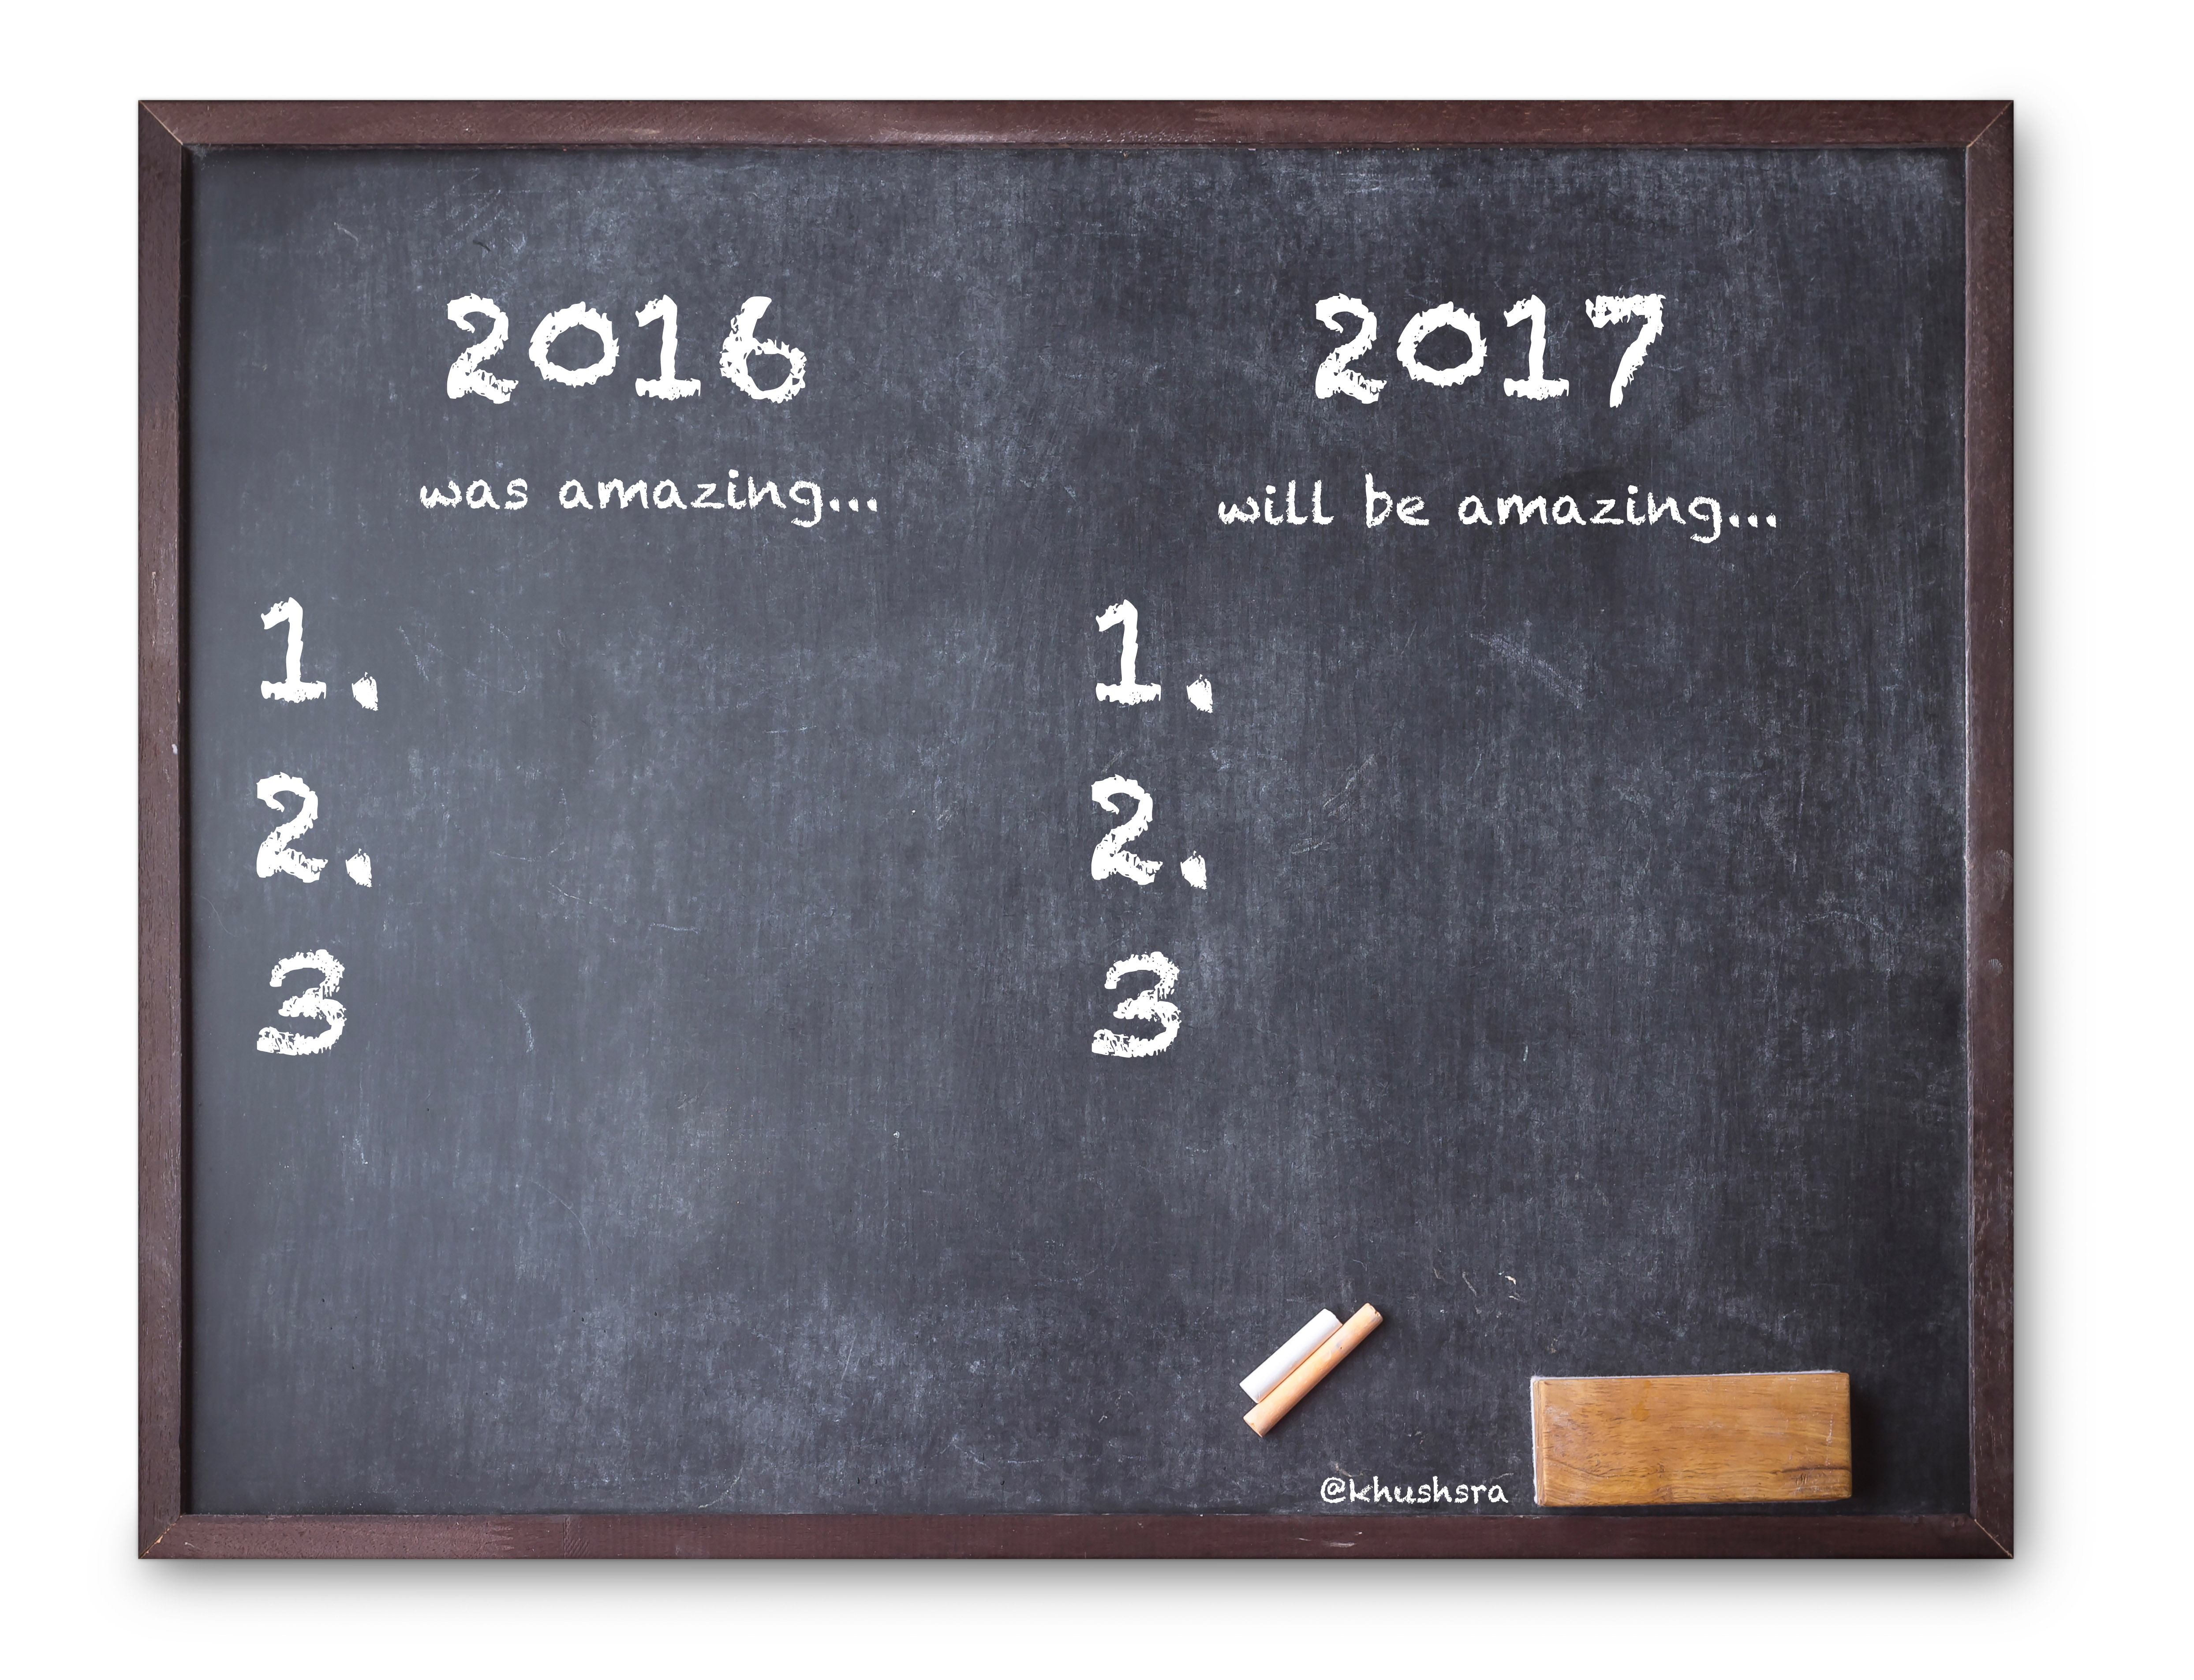 Why believing is the most important resolution for 2017